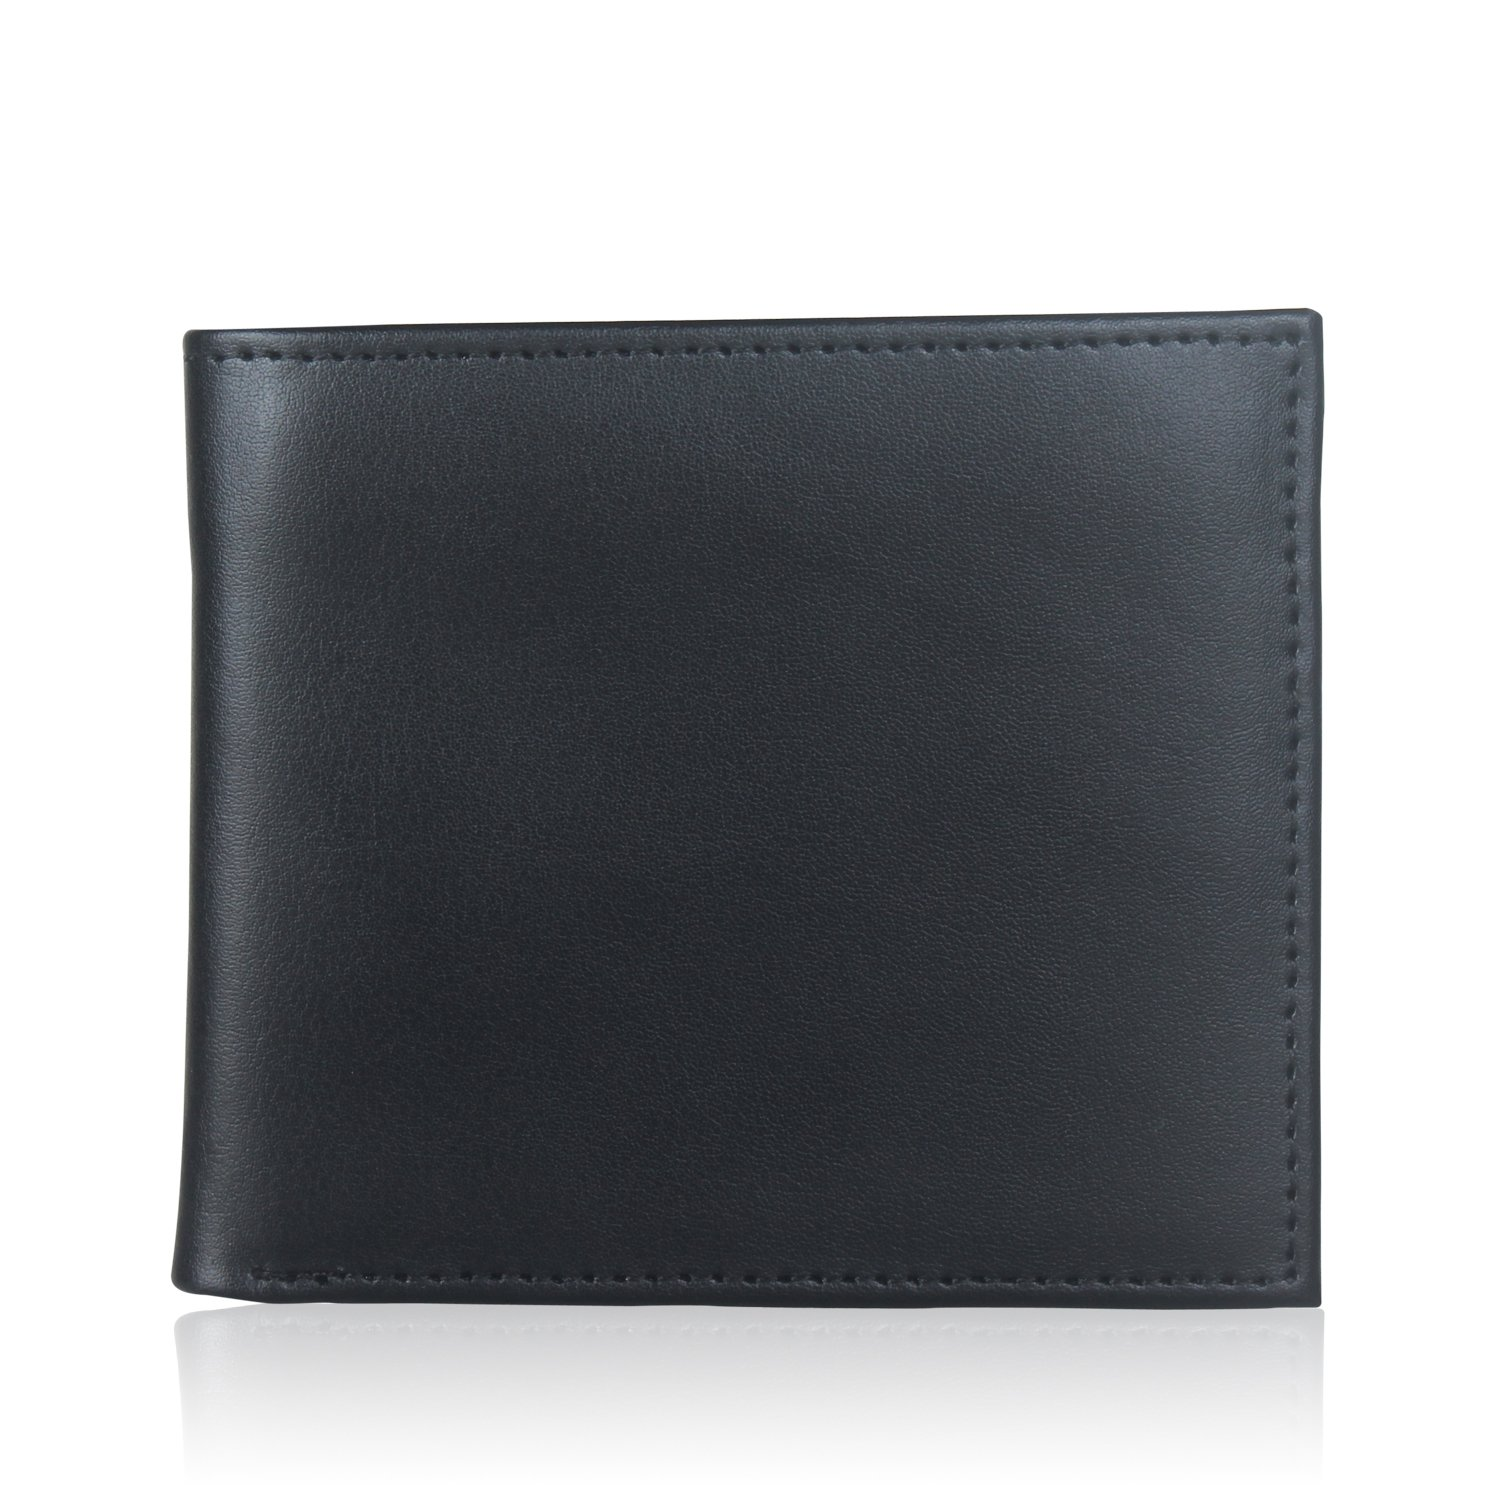 Genuine Leather Wallet with RFID Blocking Credit Card Protection For Men, Premium Travel Secure Trifold Wallets. Love It Your!